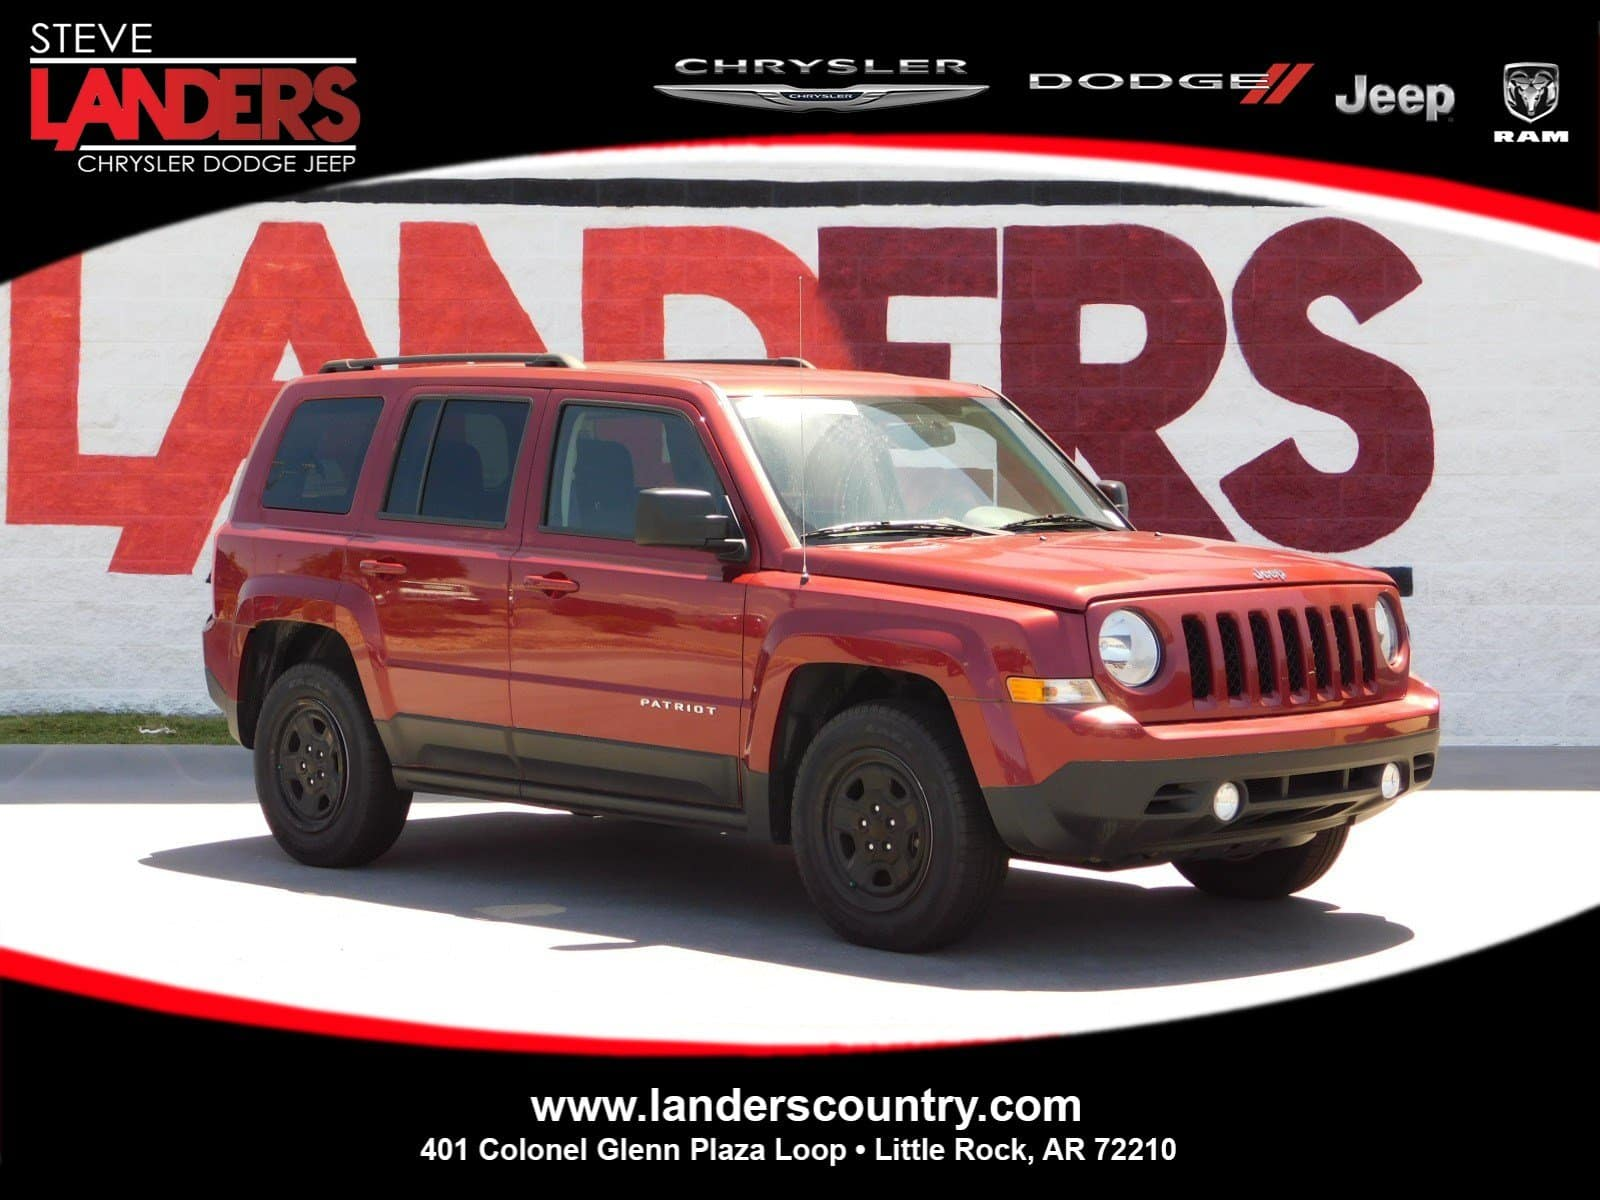 Used Cars In Benton, AR | Steve Landers Chrysler Dodge Jeep Ram